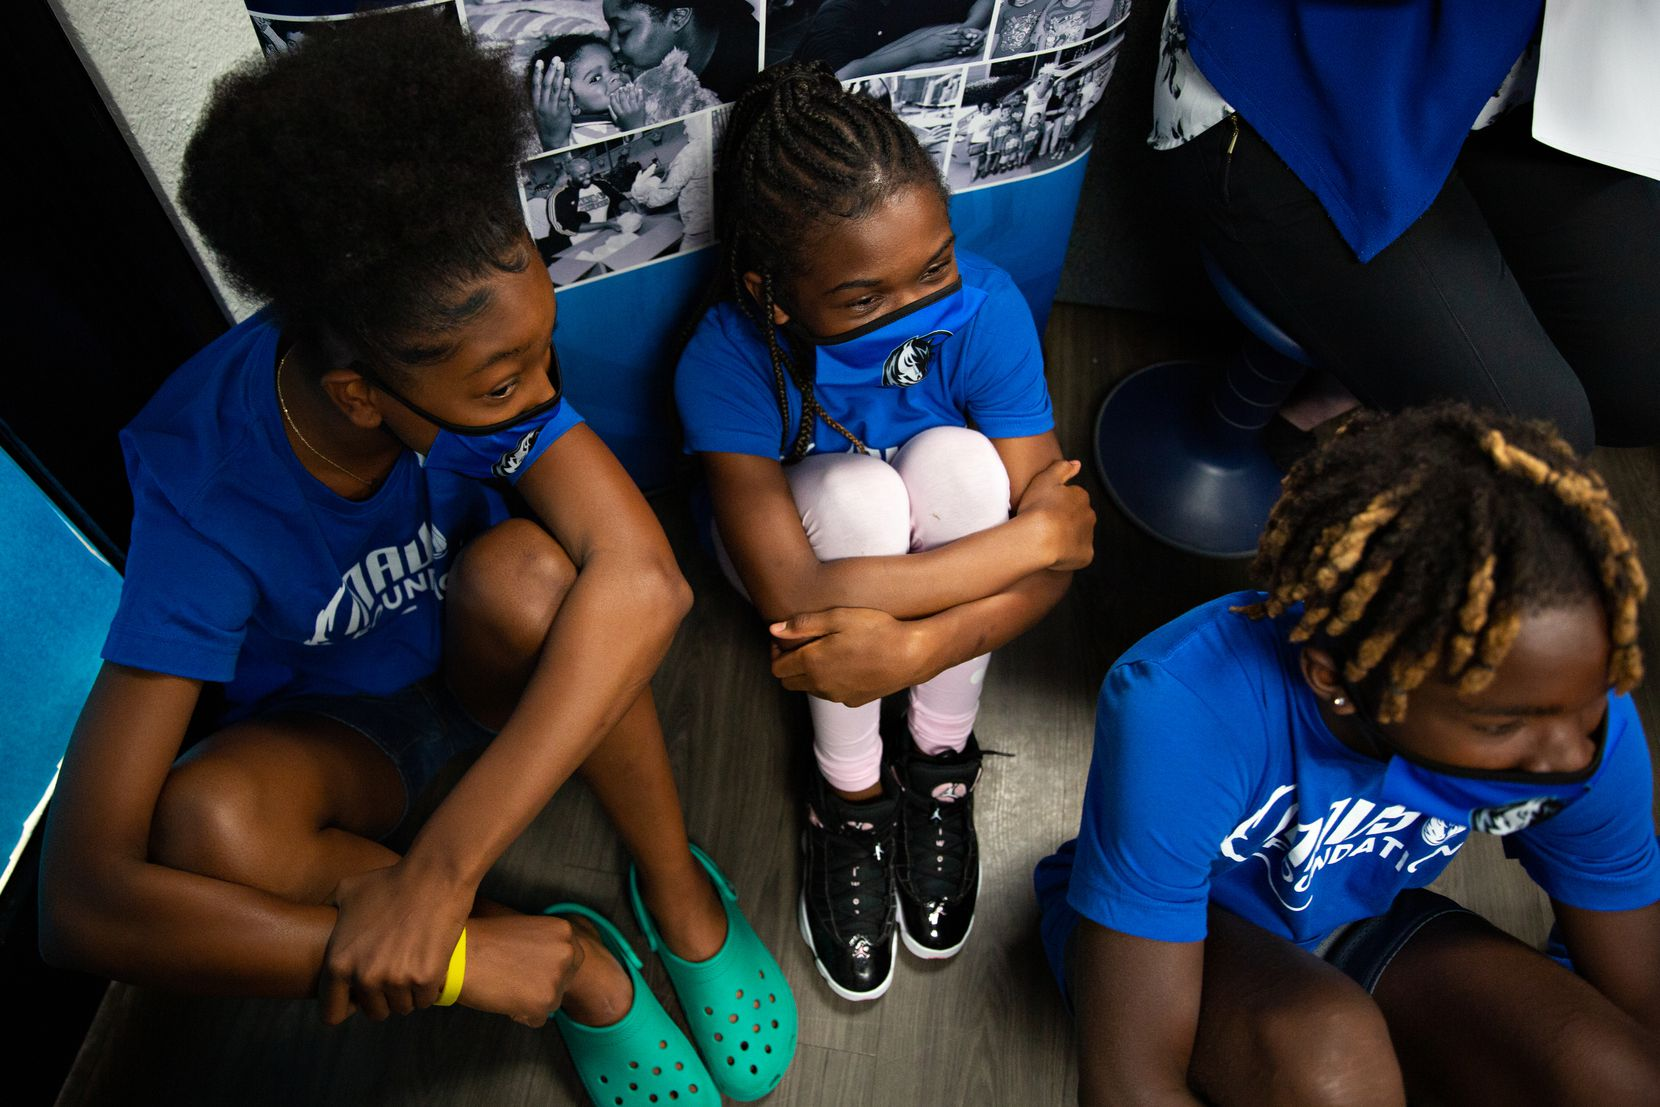 Kristian Haynes, 13, Dameah Settles, 11, and Derrick Washington, 13 listen to Dallas Mavericks guard Nate Hinton talk about the Mavs Foundation's of its newest reading and earning center renovation at the Moorland YMCA at Oak Cliff on August 3, 2021. (Shelby Tauber / Special Contributor)